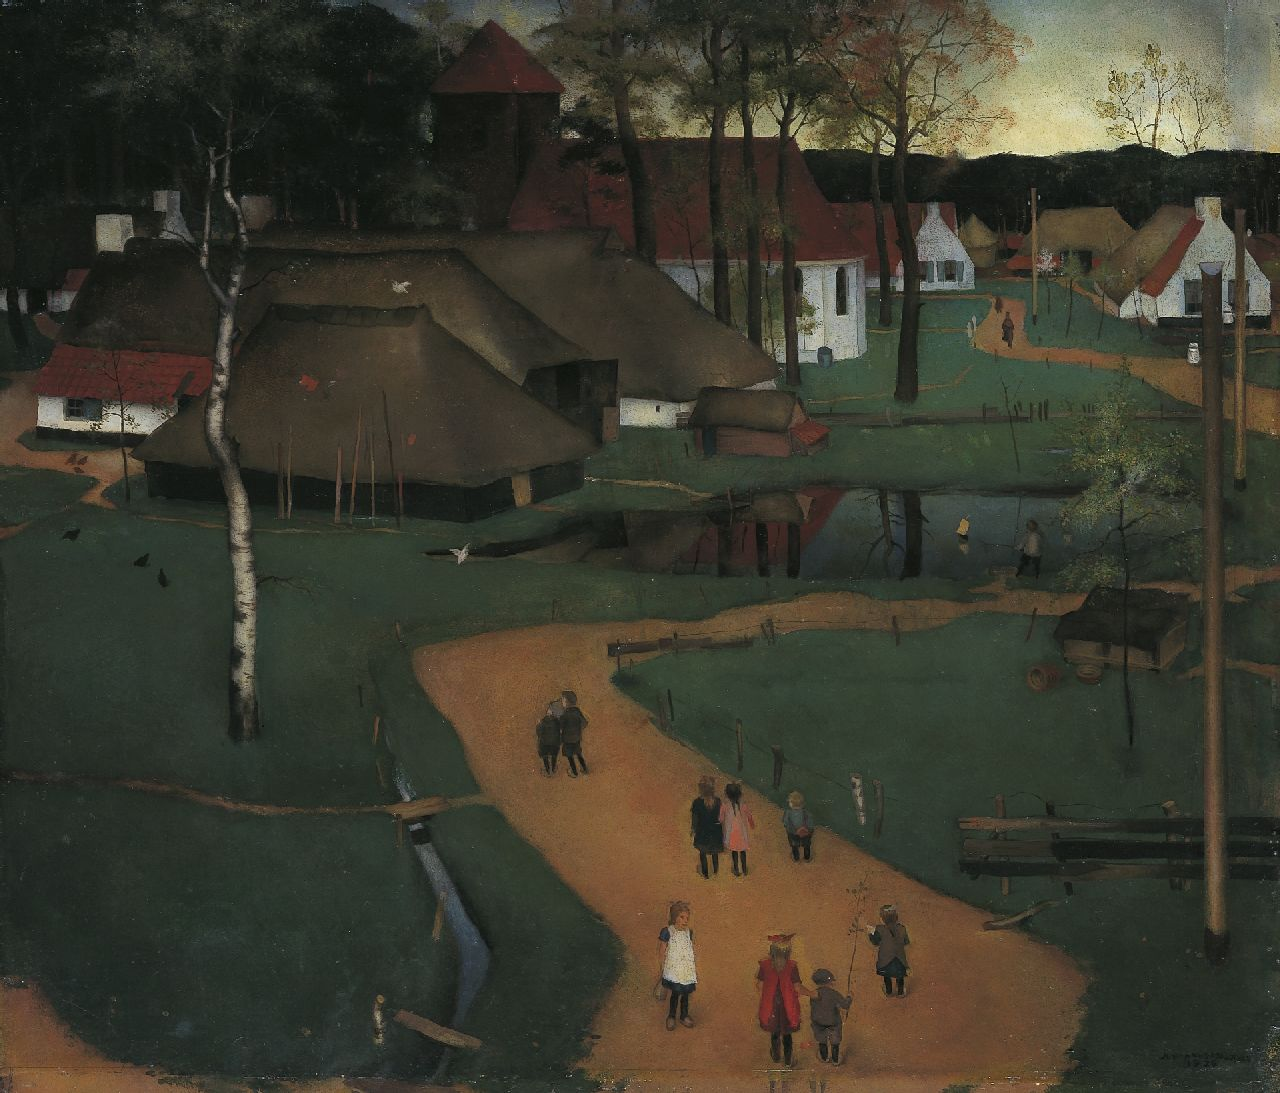 Johannes Baptist Mulders | View of a village with children on a path, oil on paper laid down on board, 61.2 x 71.0 cm, signed l.r. and dated 1926